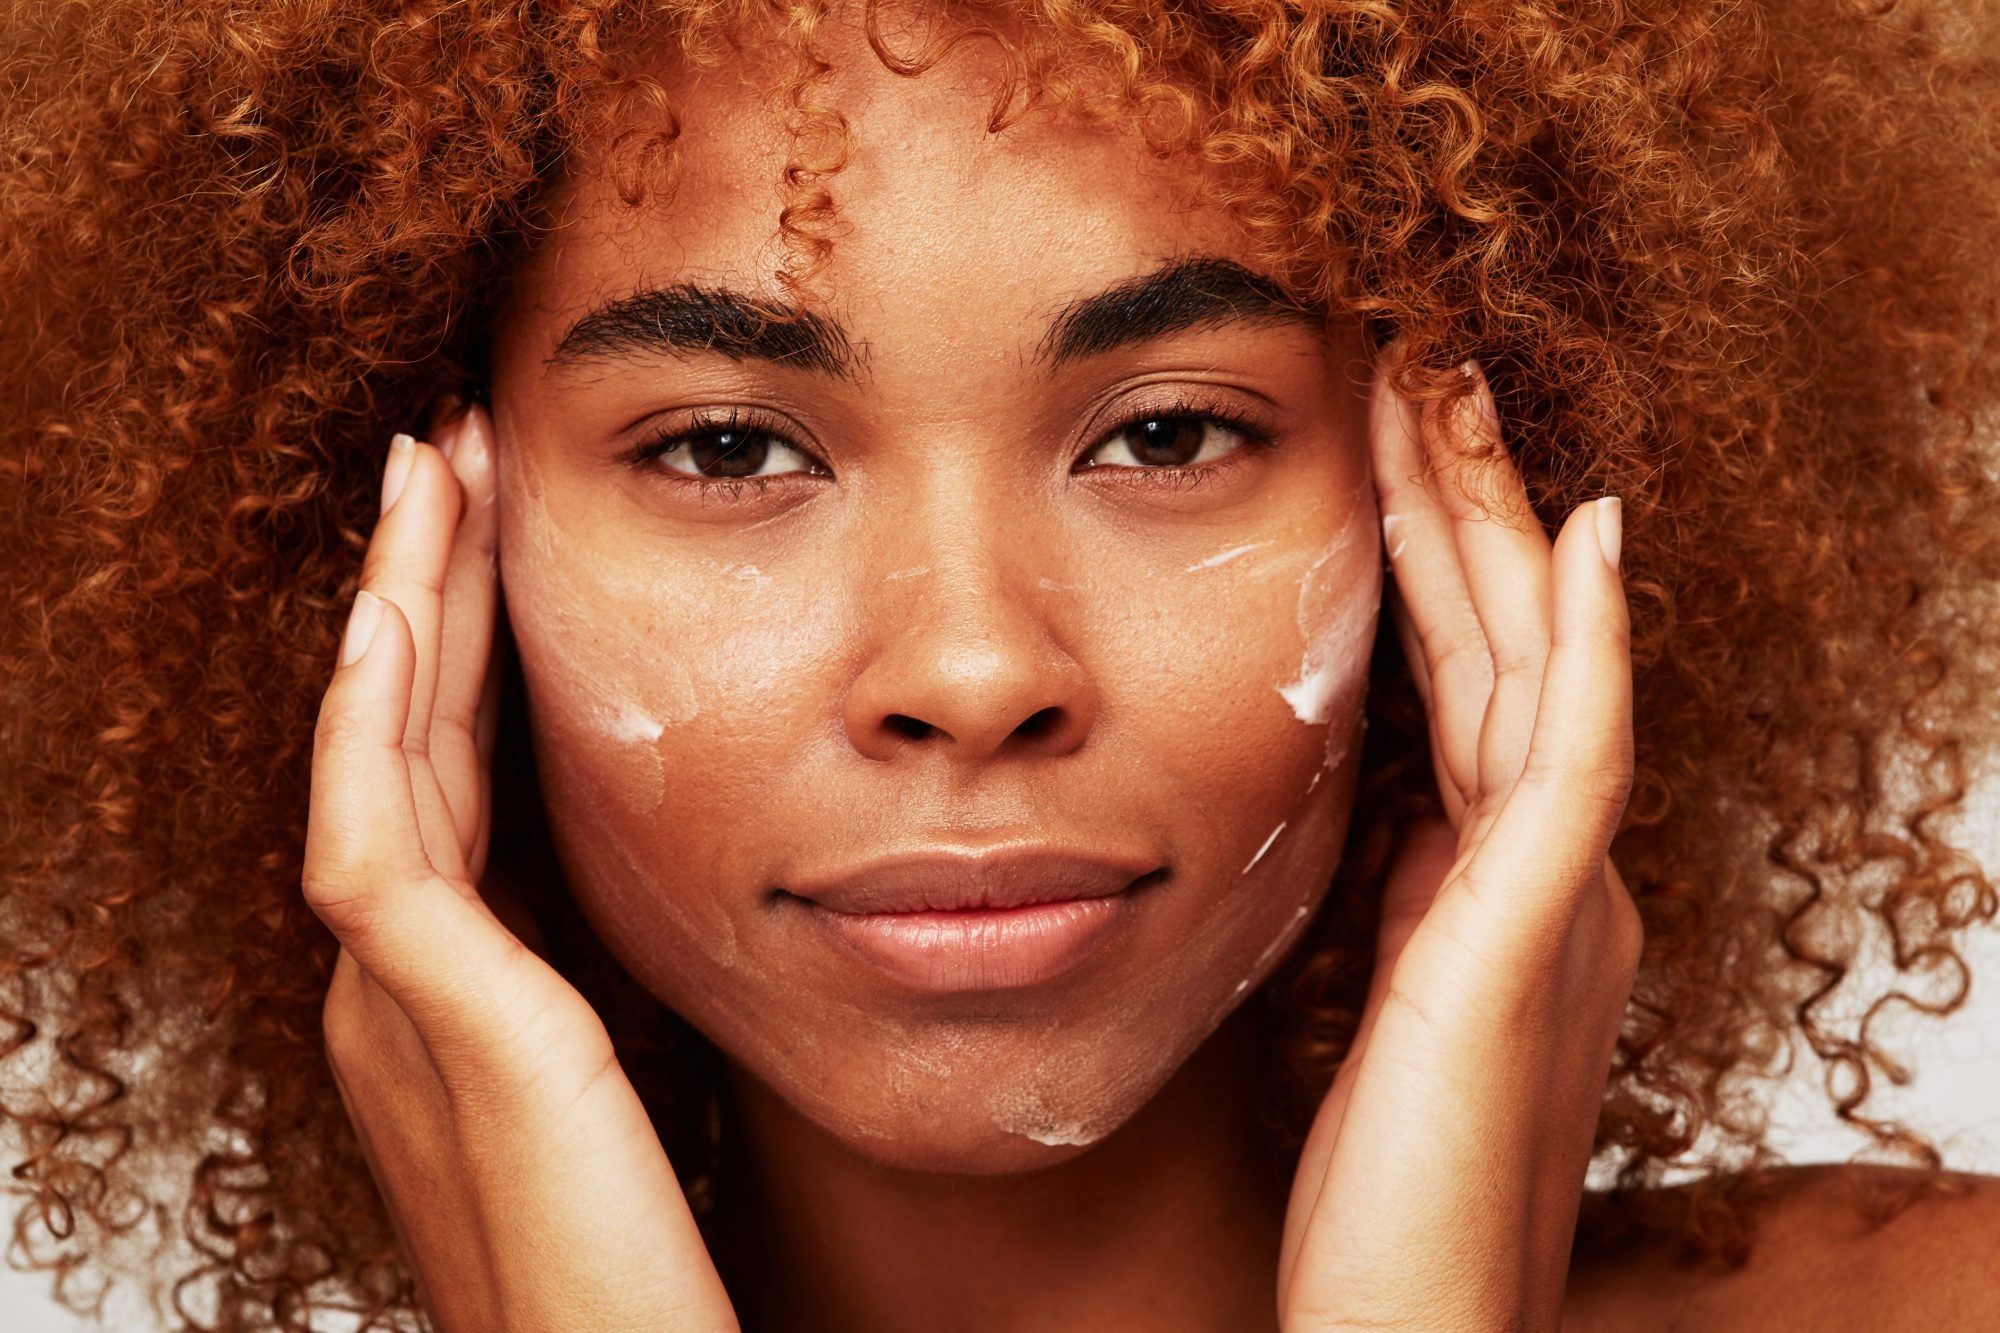 Innovative Beauty Brand Ebony's Beauty Hair and Skin Care Adds New Products to Their Inventory 1